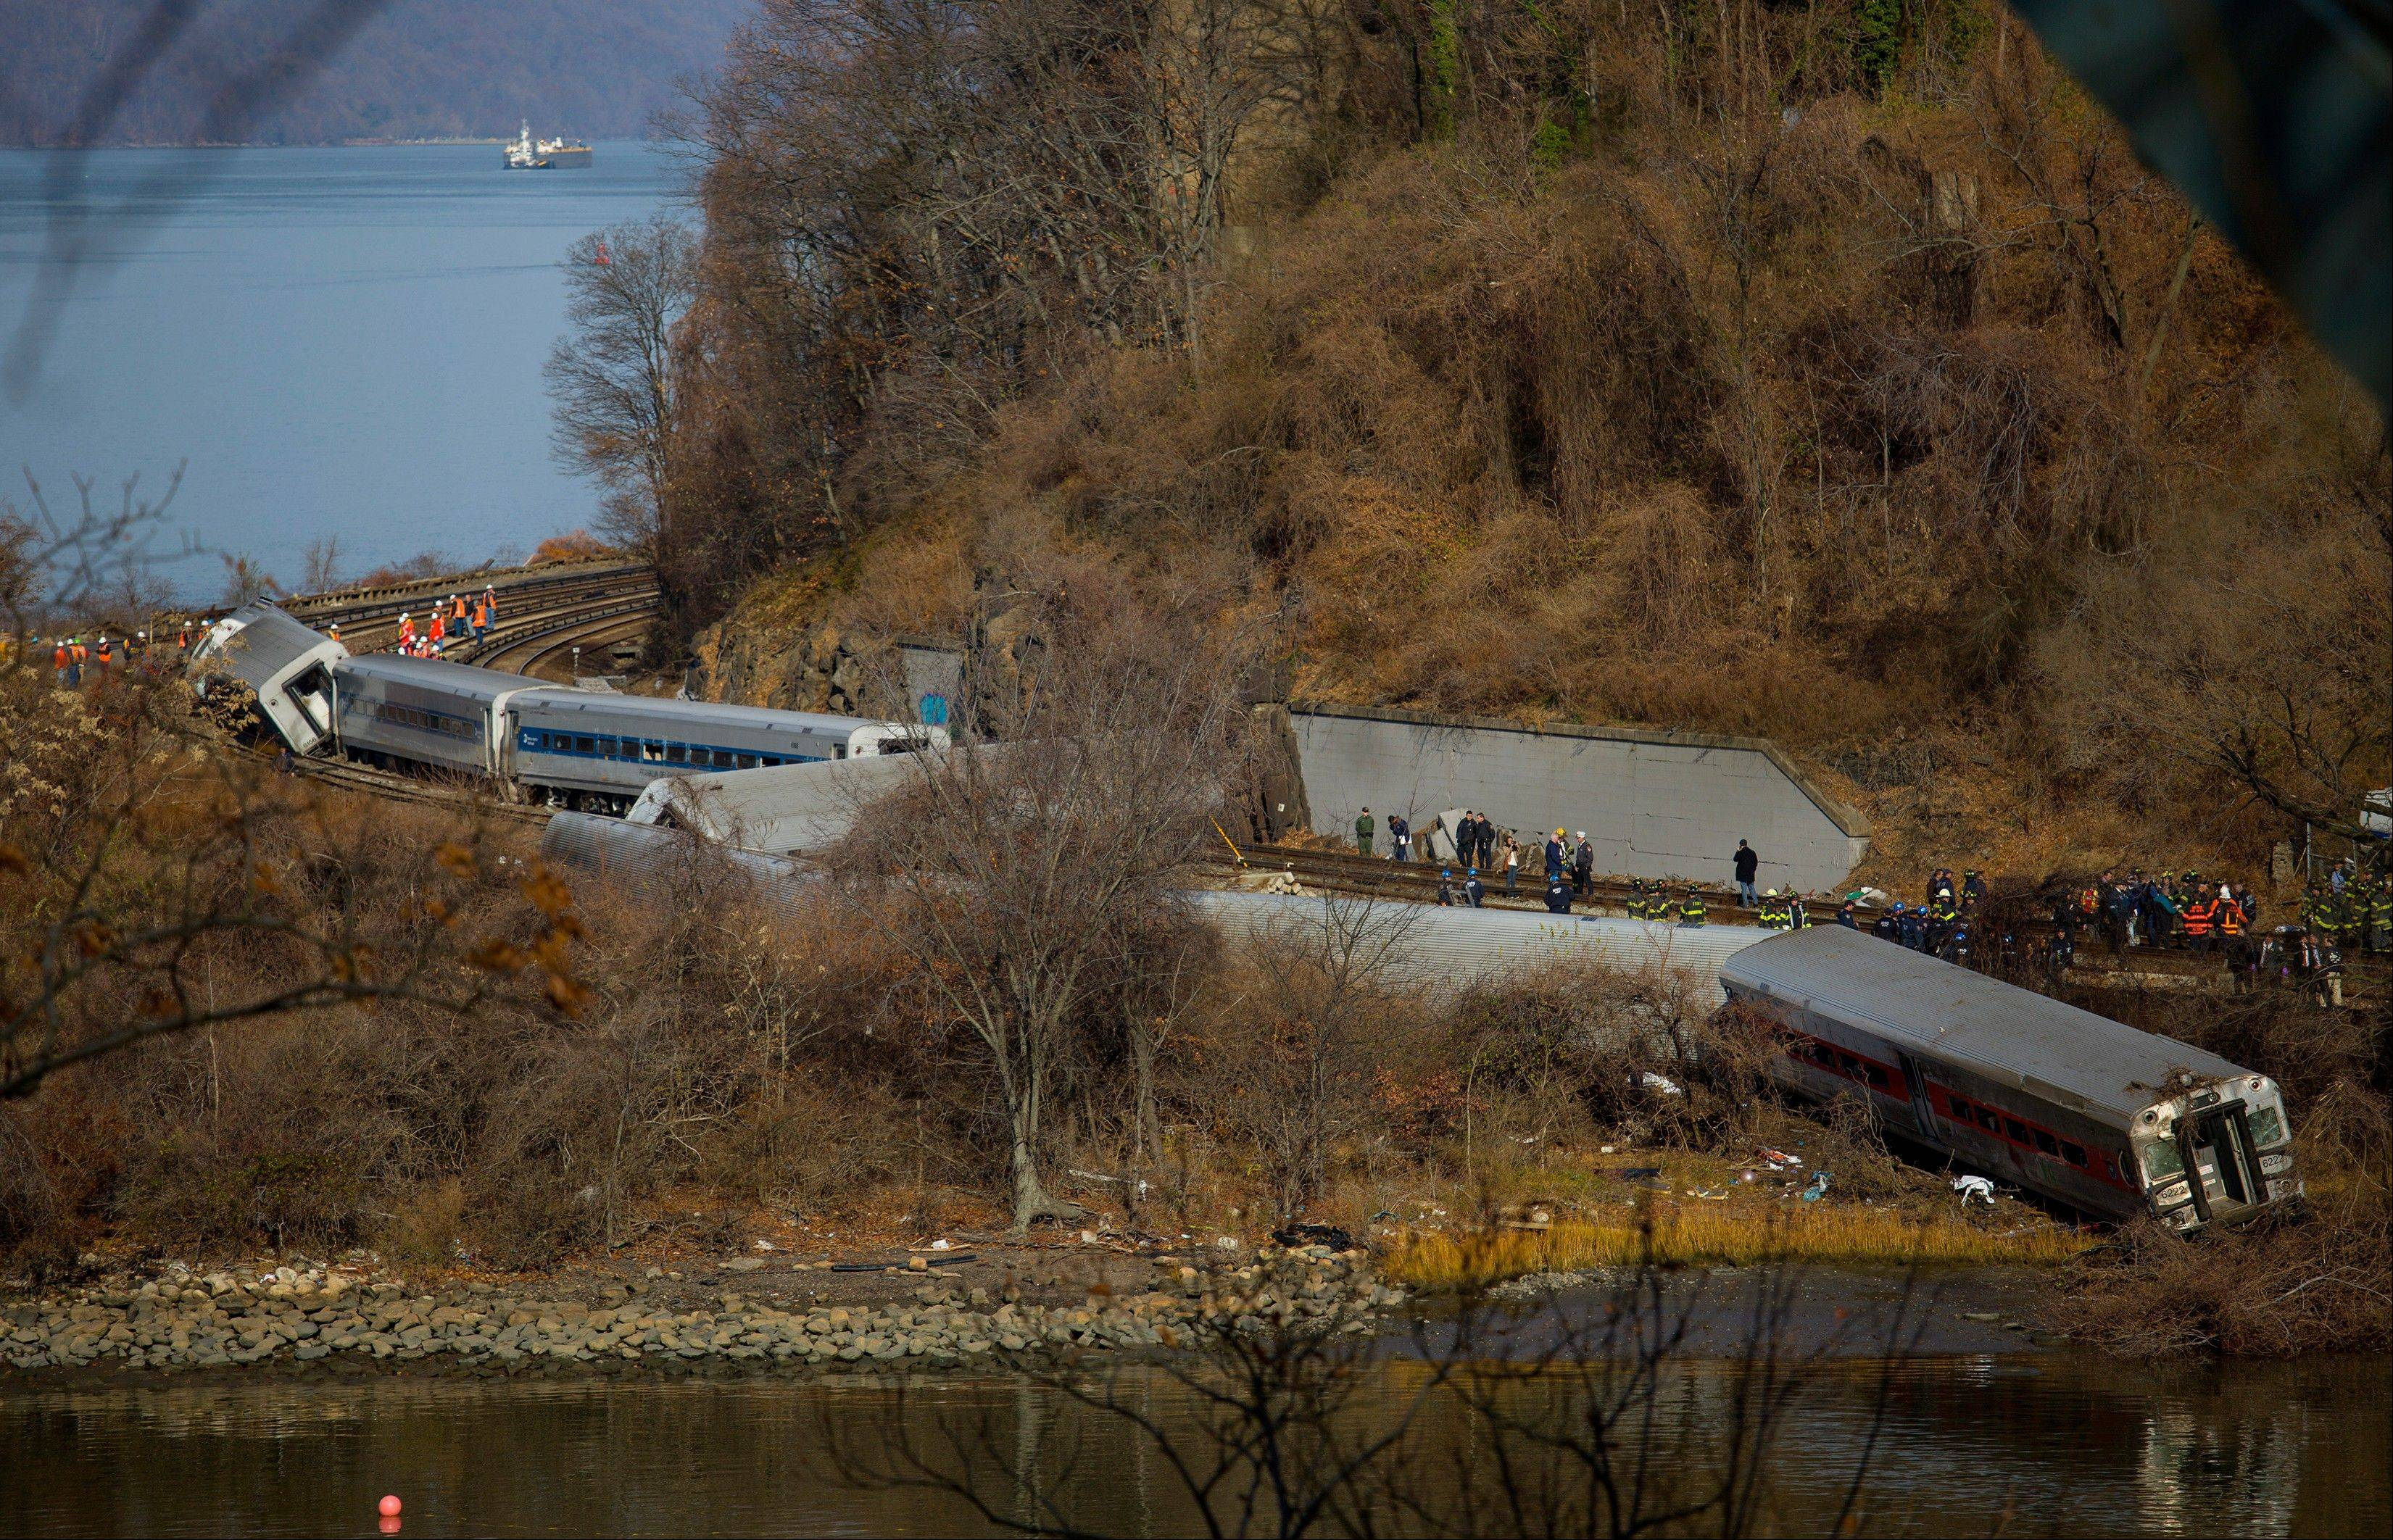 Emergency rescue personnel work the scene of a Metro-North passenger train derailment in the Bronx borough of New York.